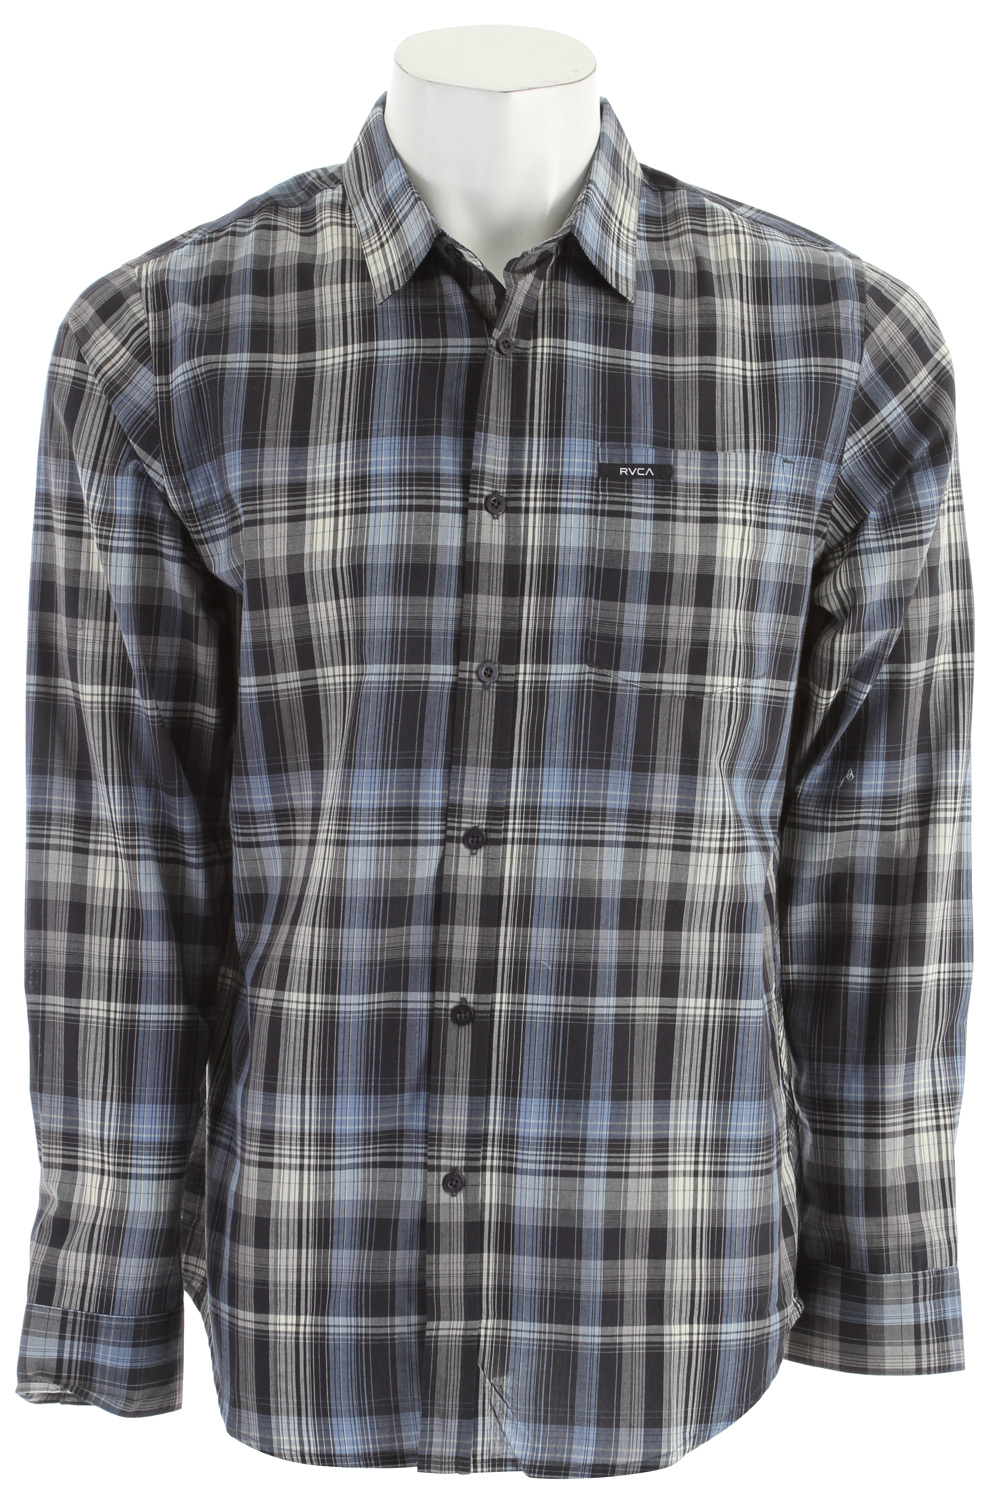 Guns and Military Key Features of the RVCA Cationic L/S Shirt: Slim fit 60% cotton/40% polyester poplin yearn dyed plaid Long sleeve woven button down shirt One patch pocket at left chest with RVCA printed patch Binding and taping details at side seams - $35.95